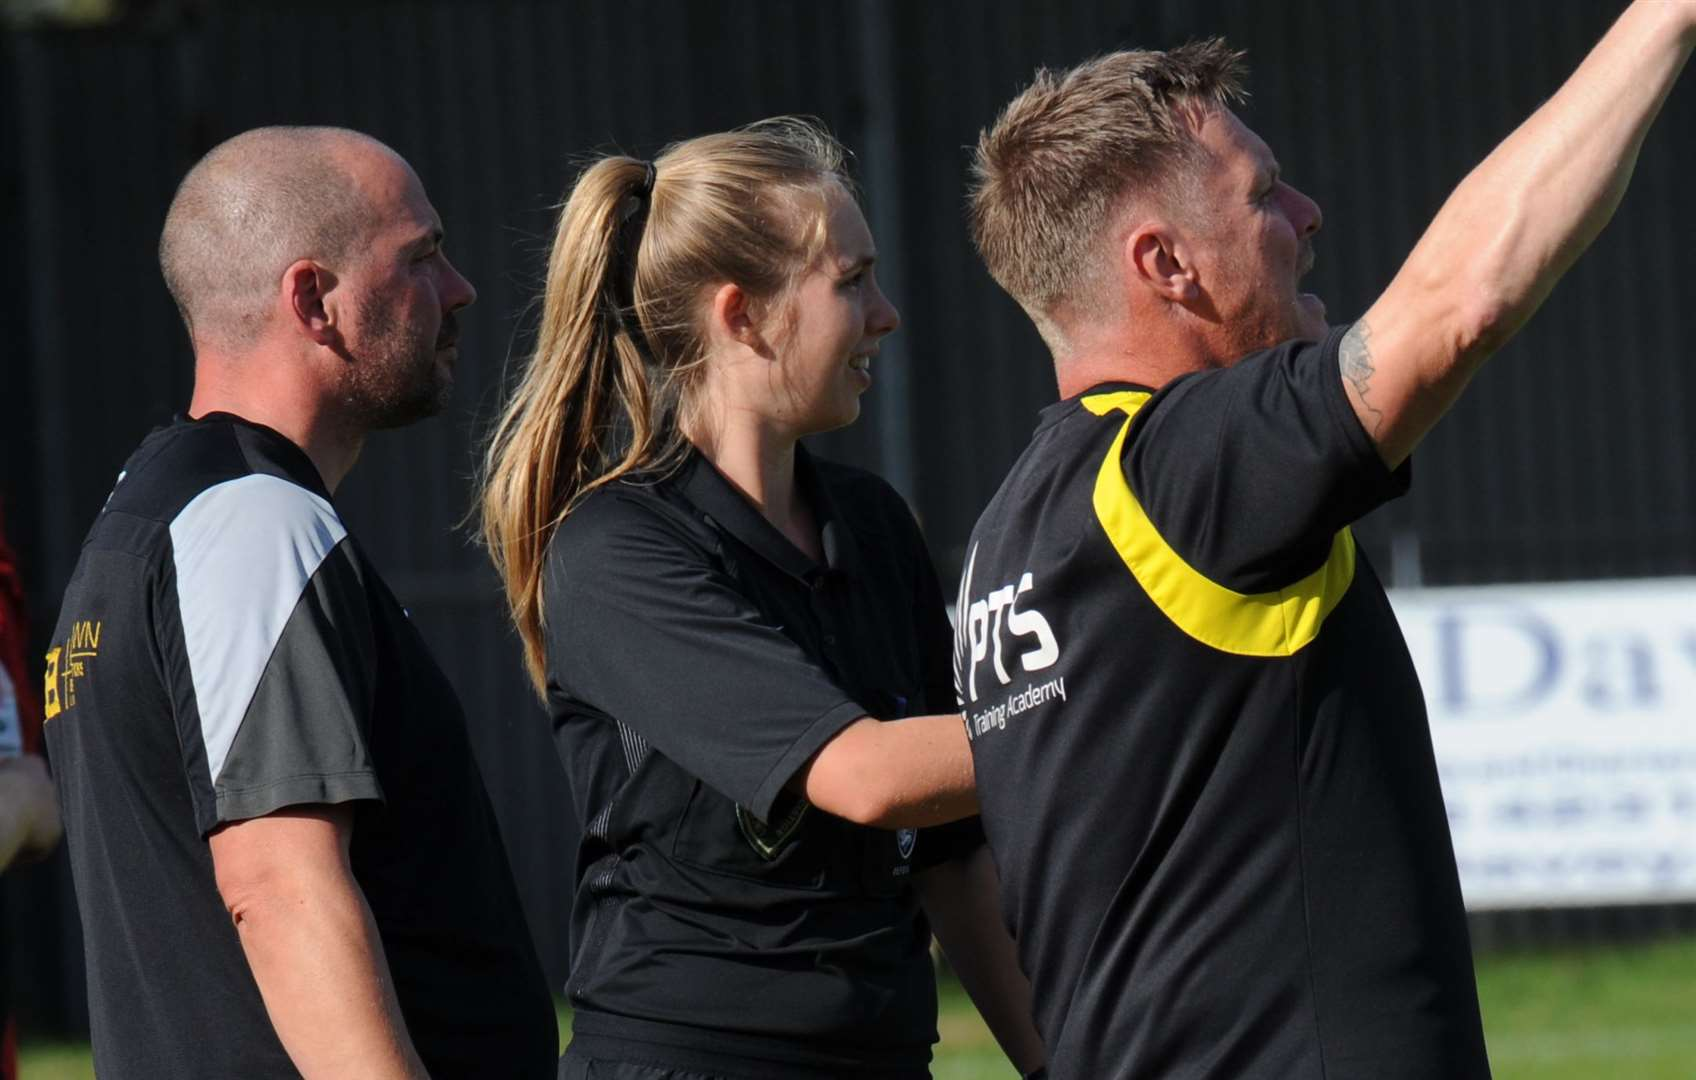 Holbeach United manager Phil Barnes (left) and coach Martyn Bunce.Photo by Chris Lowndes.